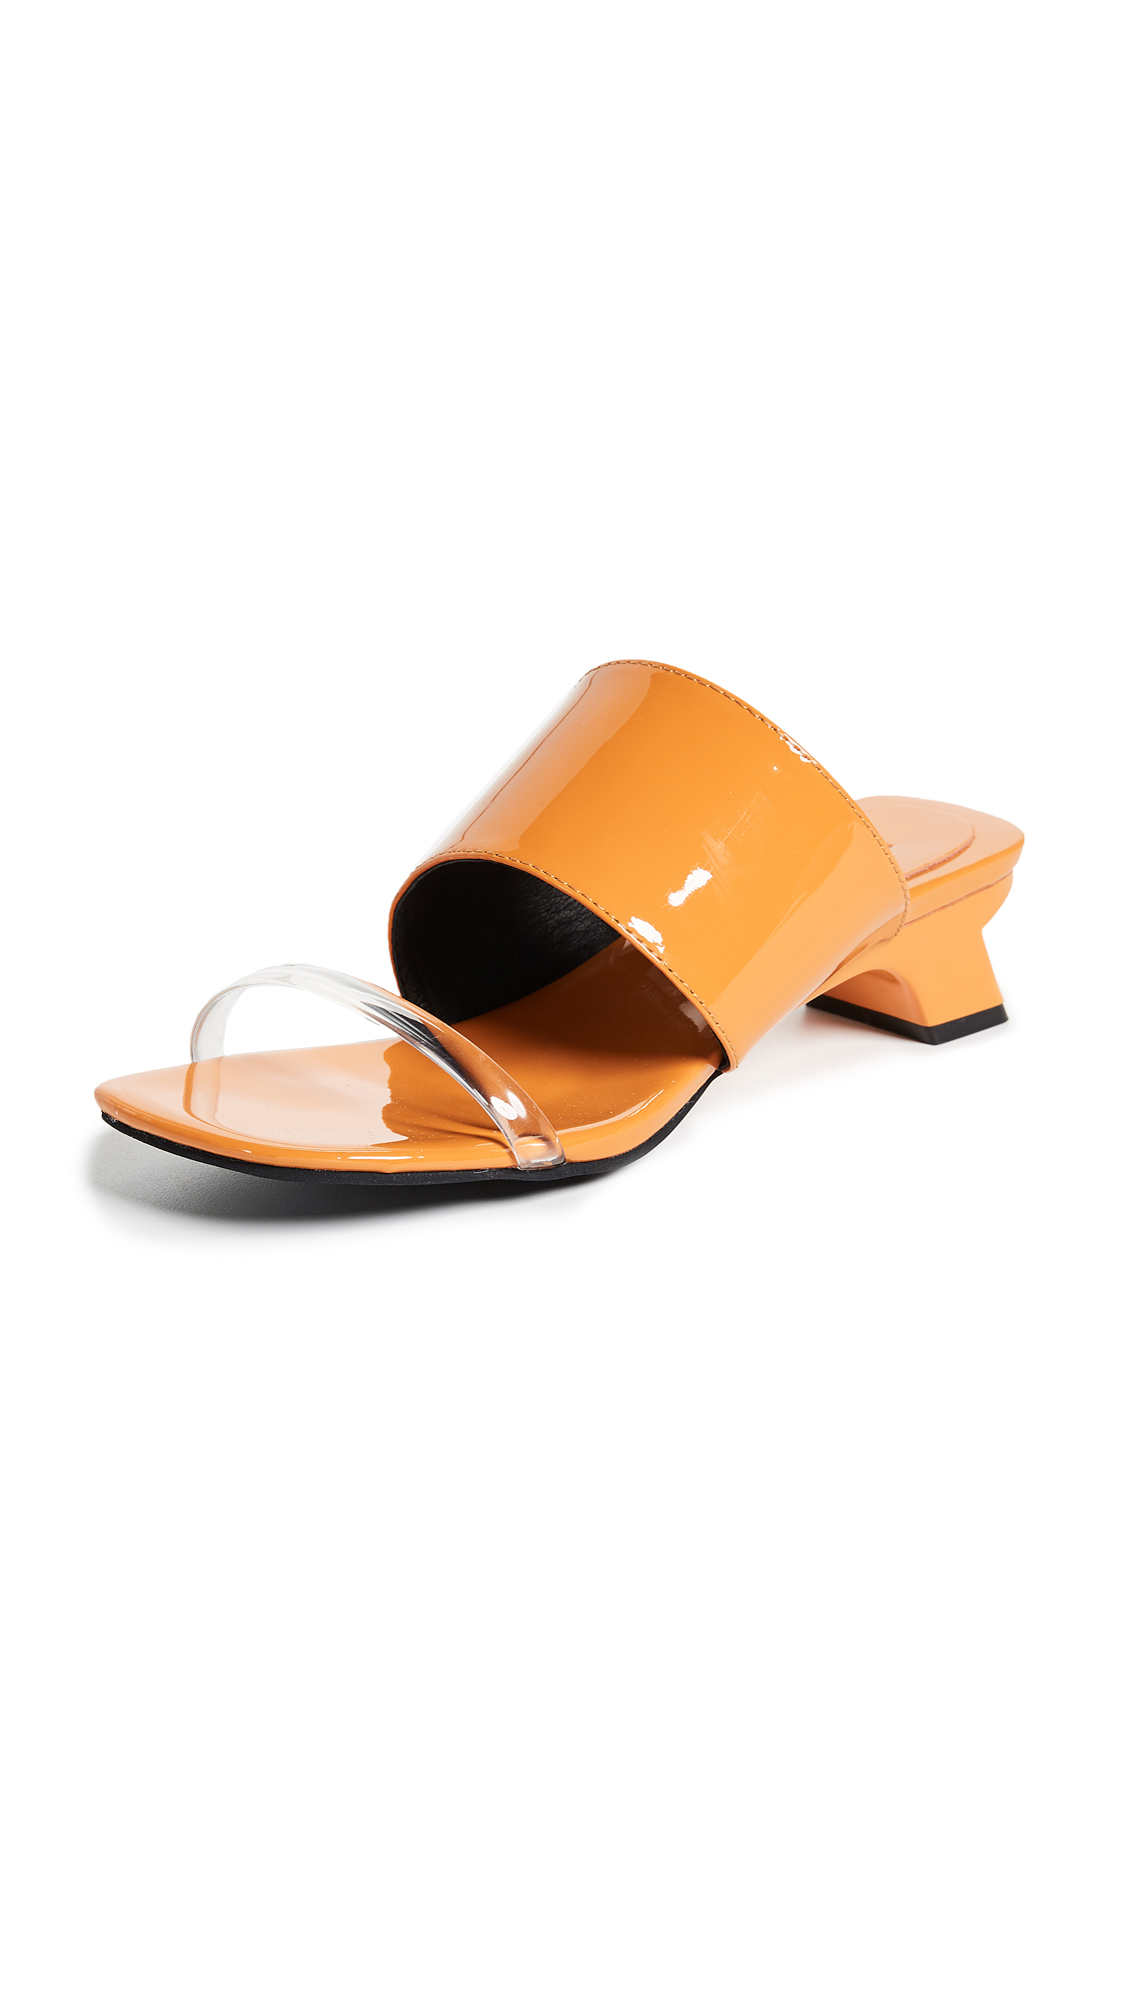 Jeffrey Campbell 4Ever Strappy Sandals - Orange